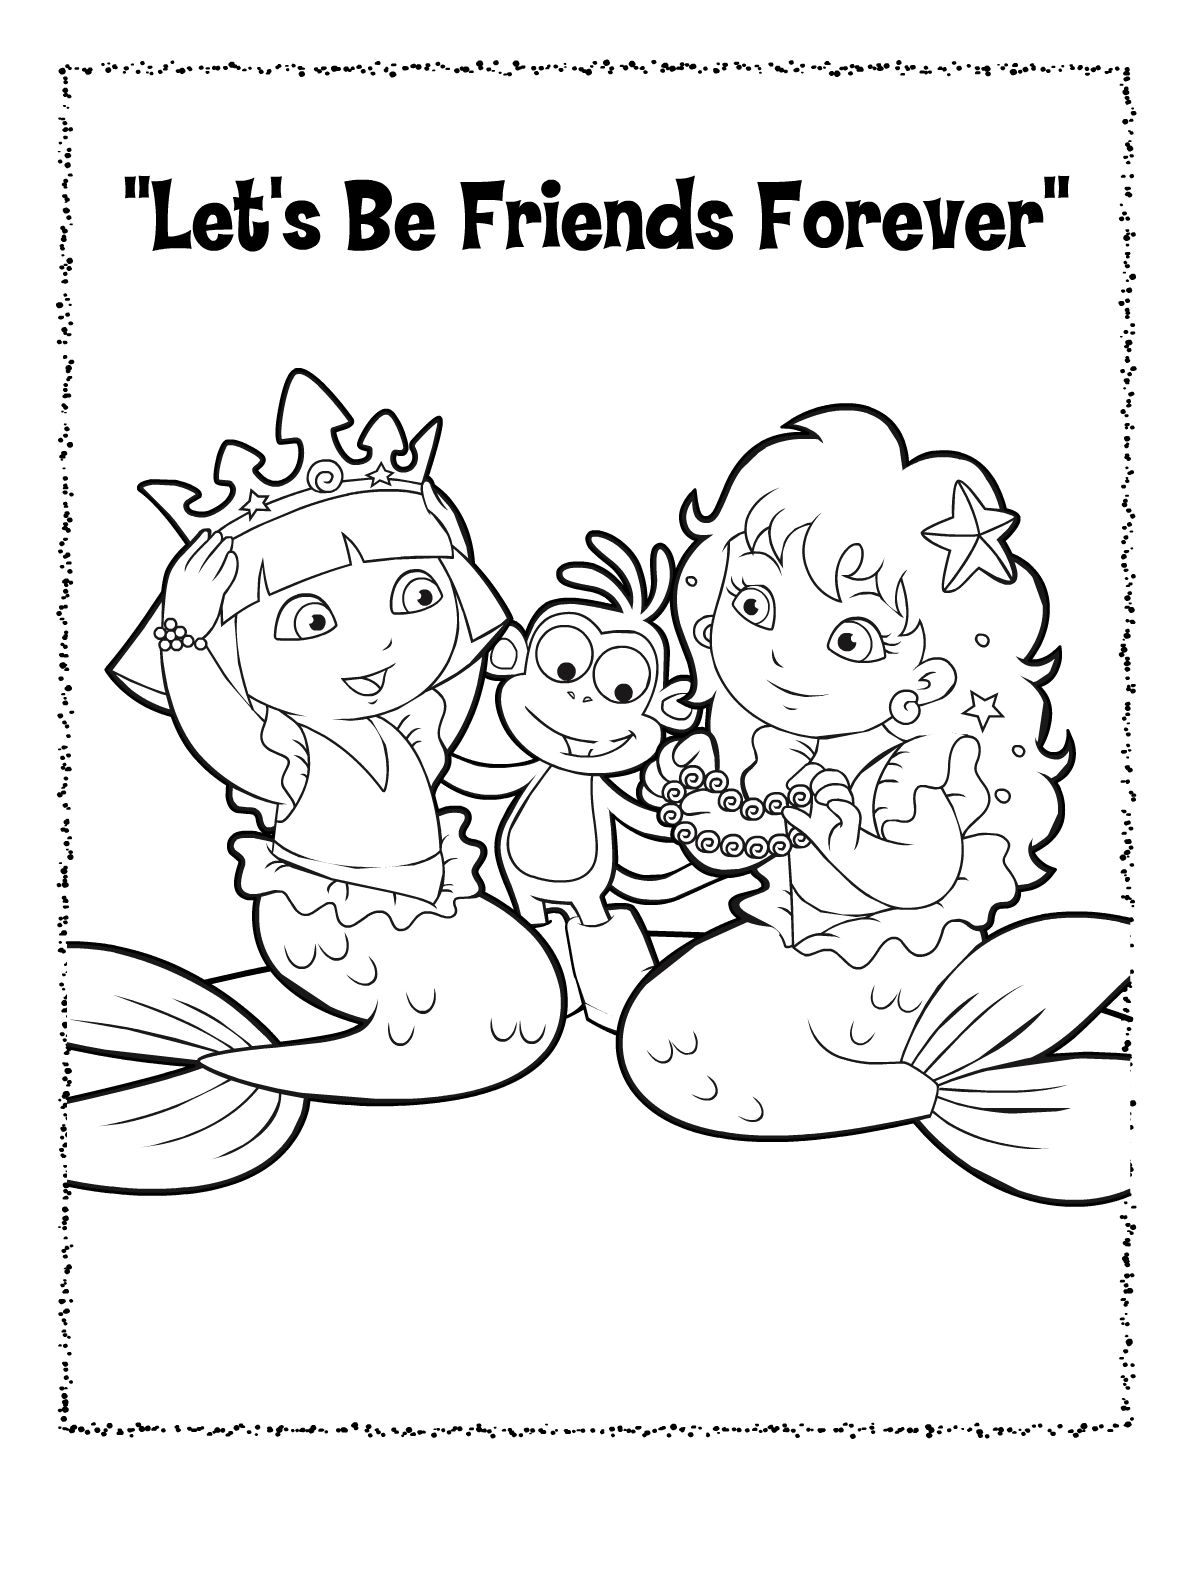 Pin By Tanja Mayan On Kleurplaten Dora Color Friends Forever